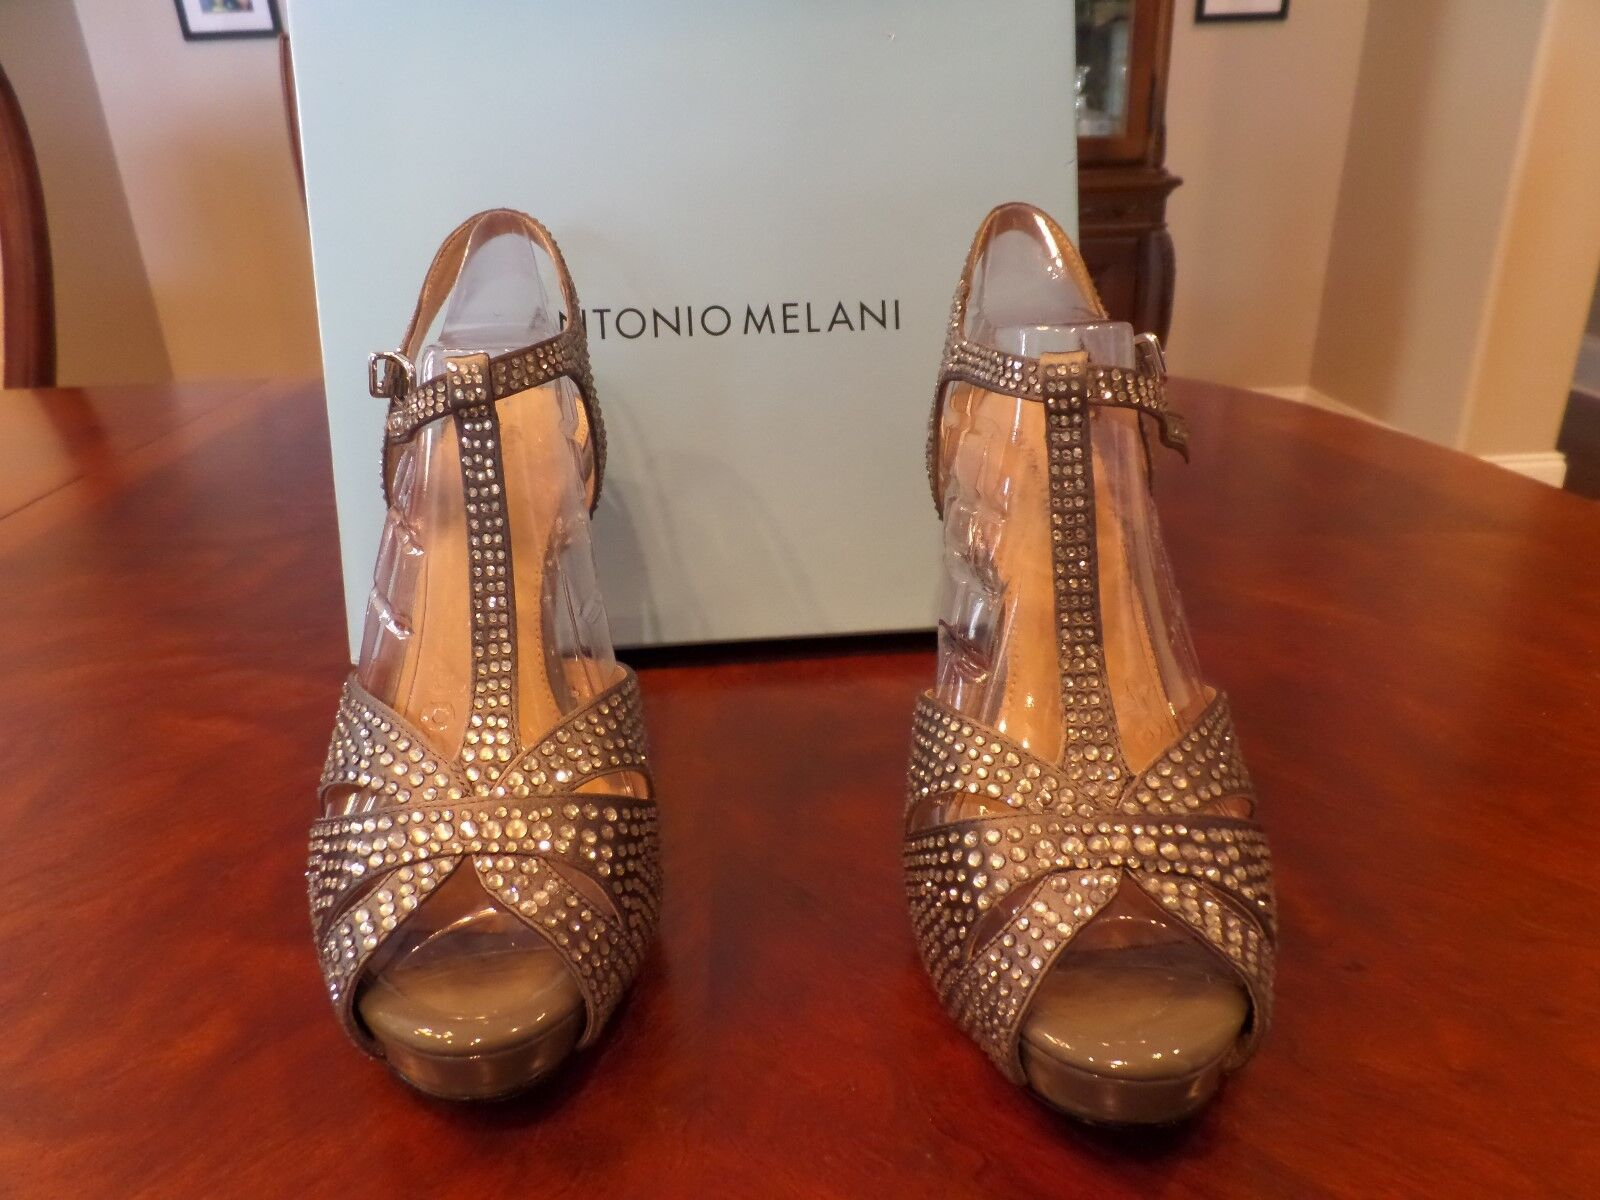 New Melani with box  Antonio Melani New Sessilee Shoes- size 10 6a99a0